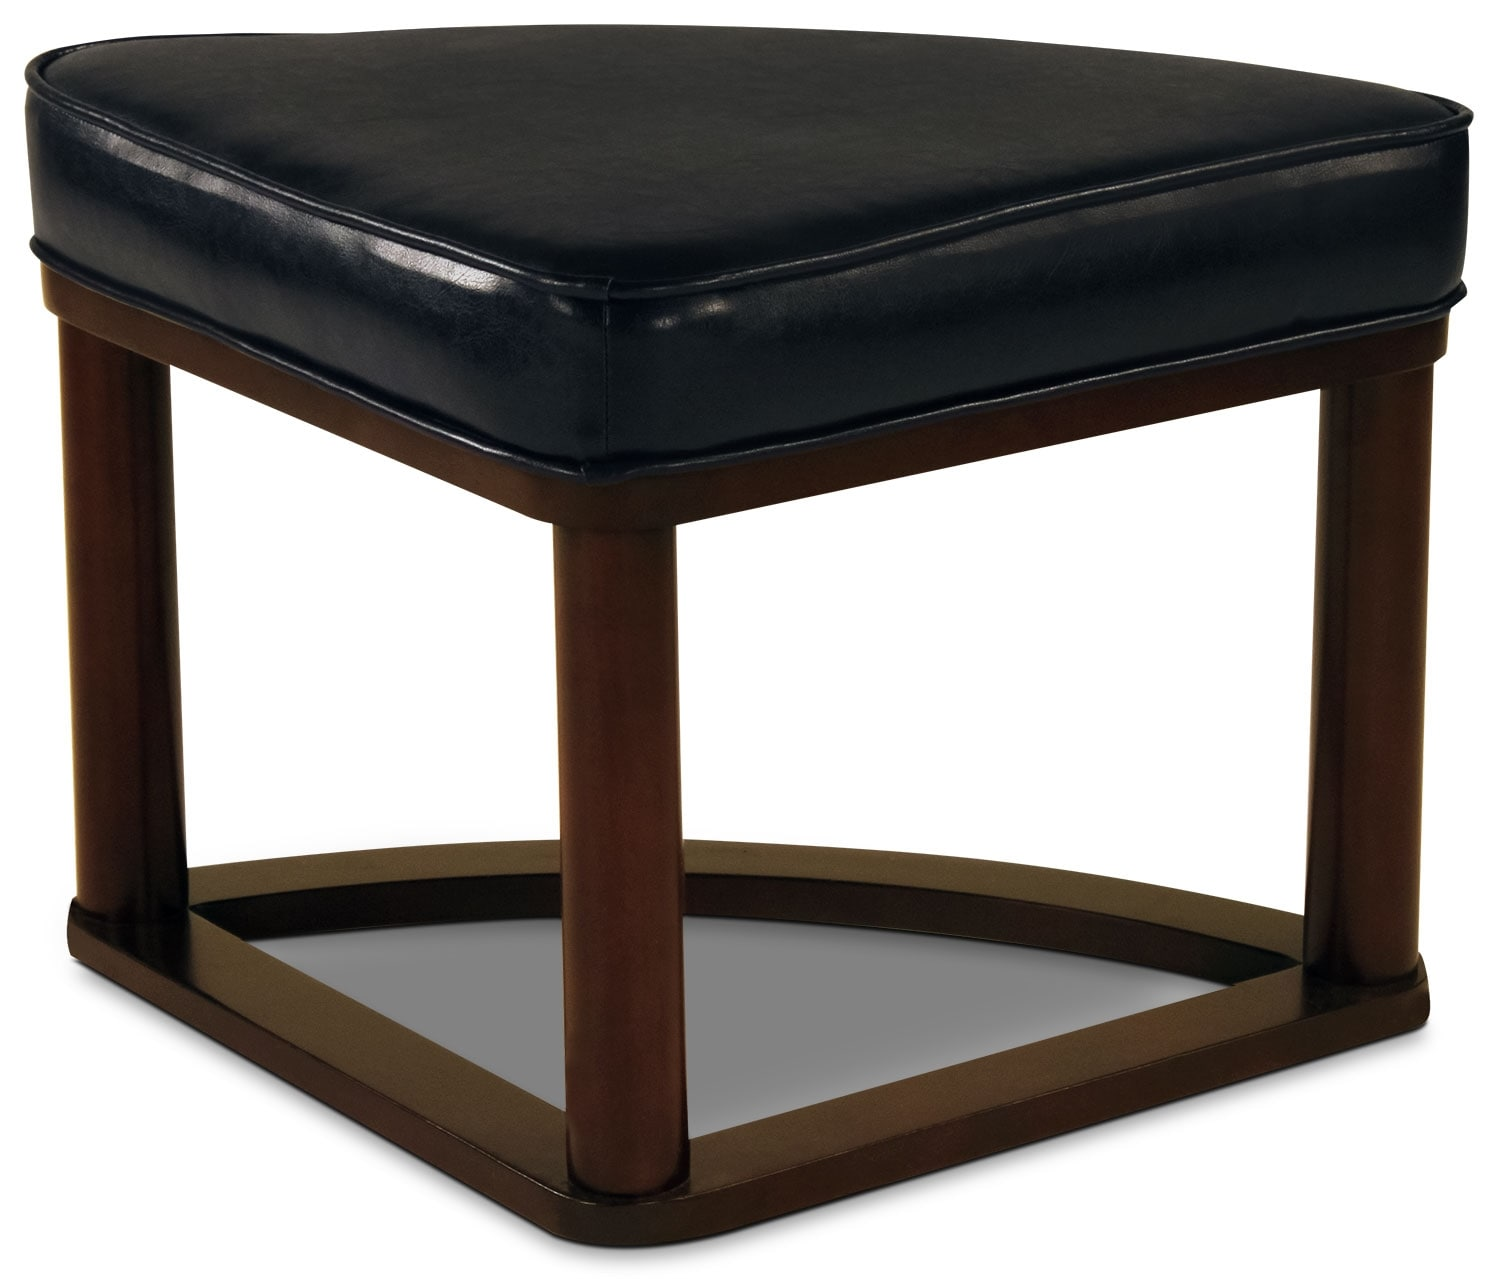 Sierra coffee table with four ottoman wedge stools the brick for Living room stools